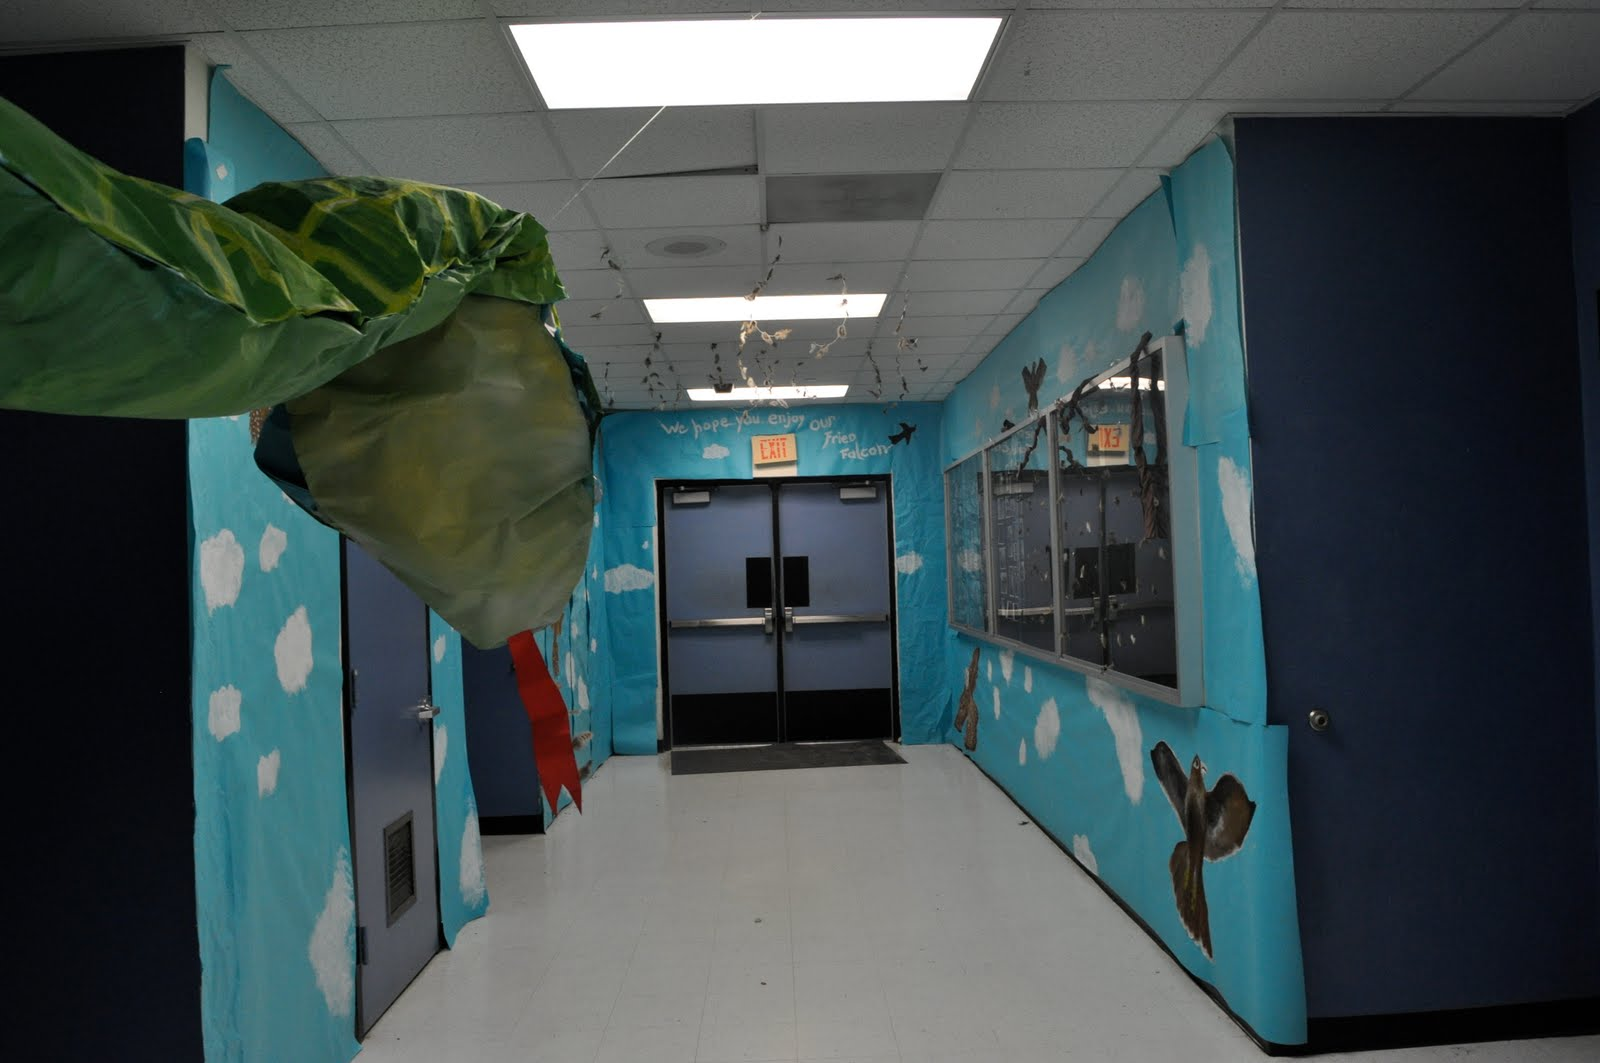 High School Hallways Decorating Ideas